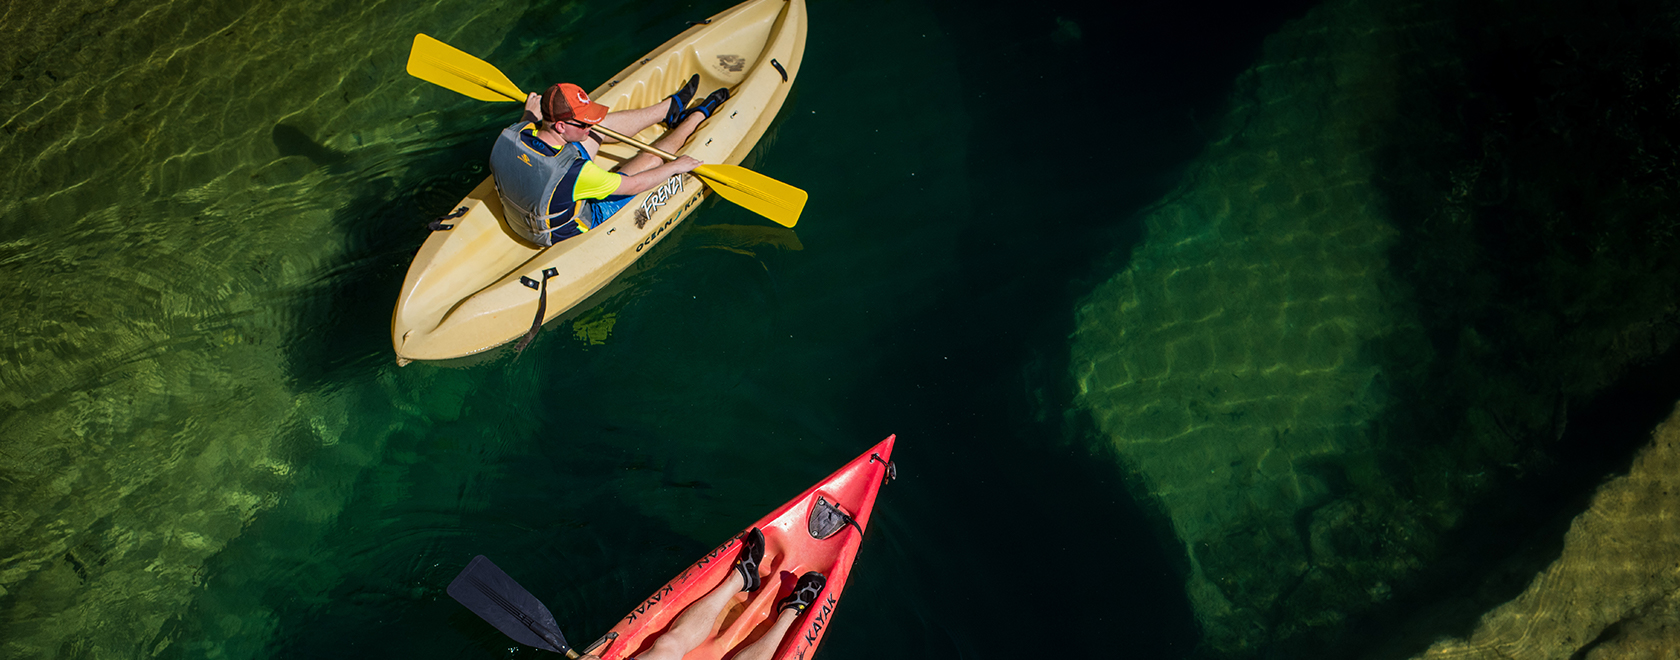 Overhead shot of two people on canoes